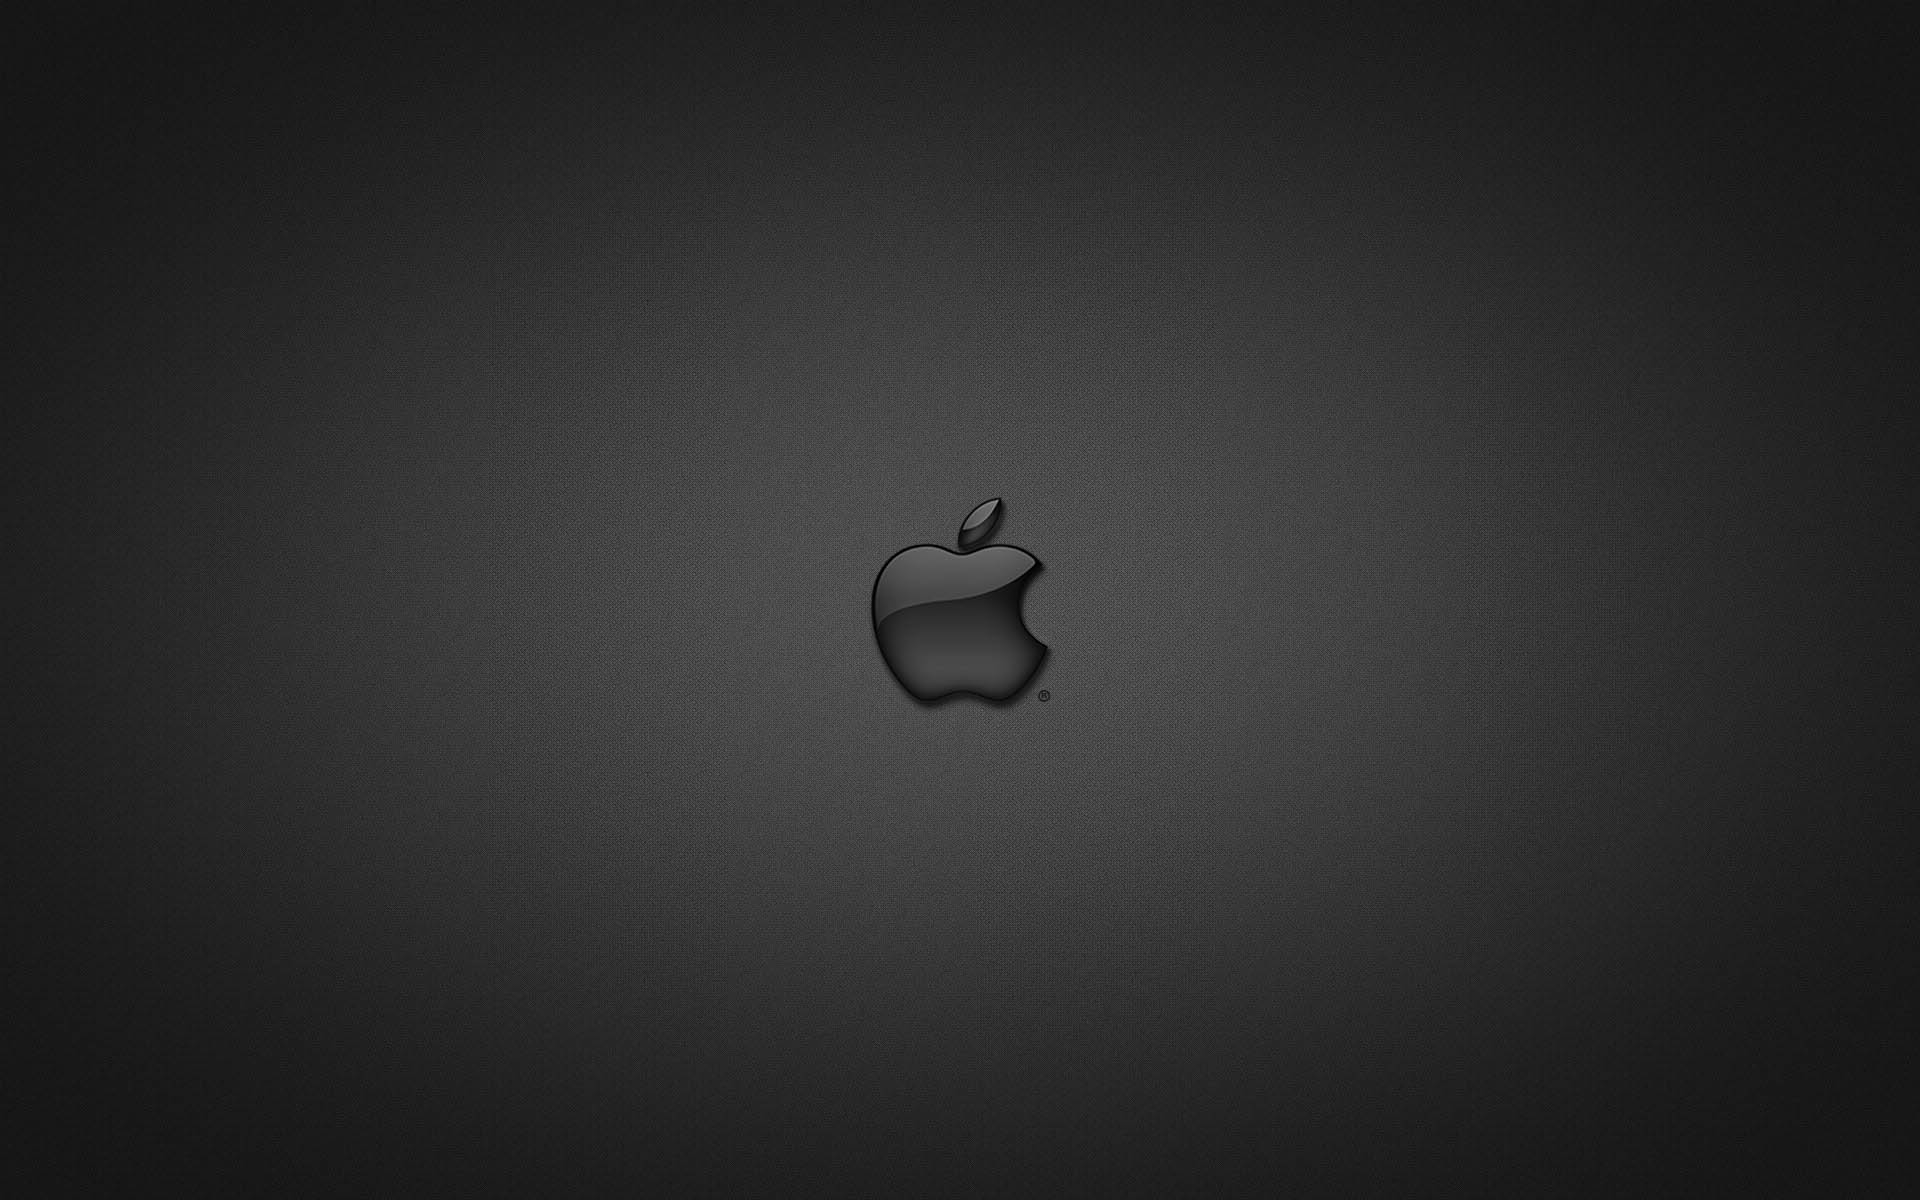 Apple in Glass Black Wallpapers HD Wallpapers 1920x1200